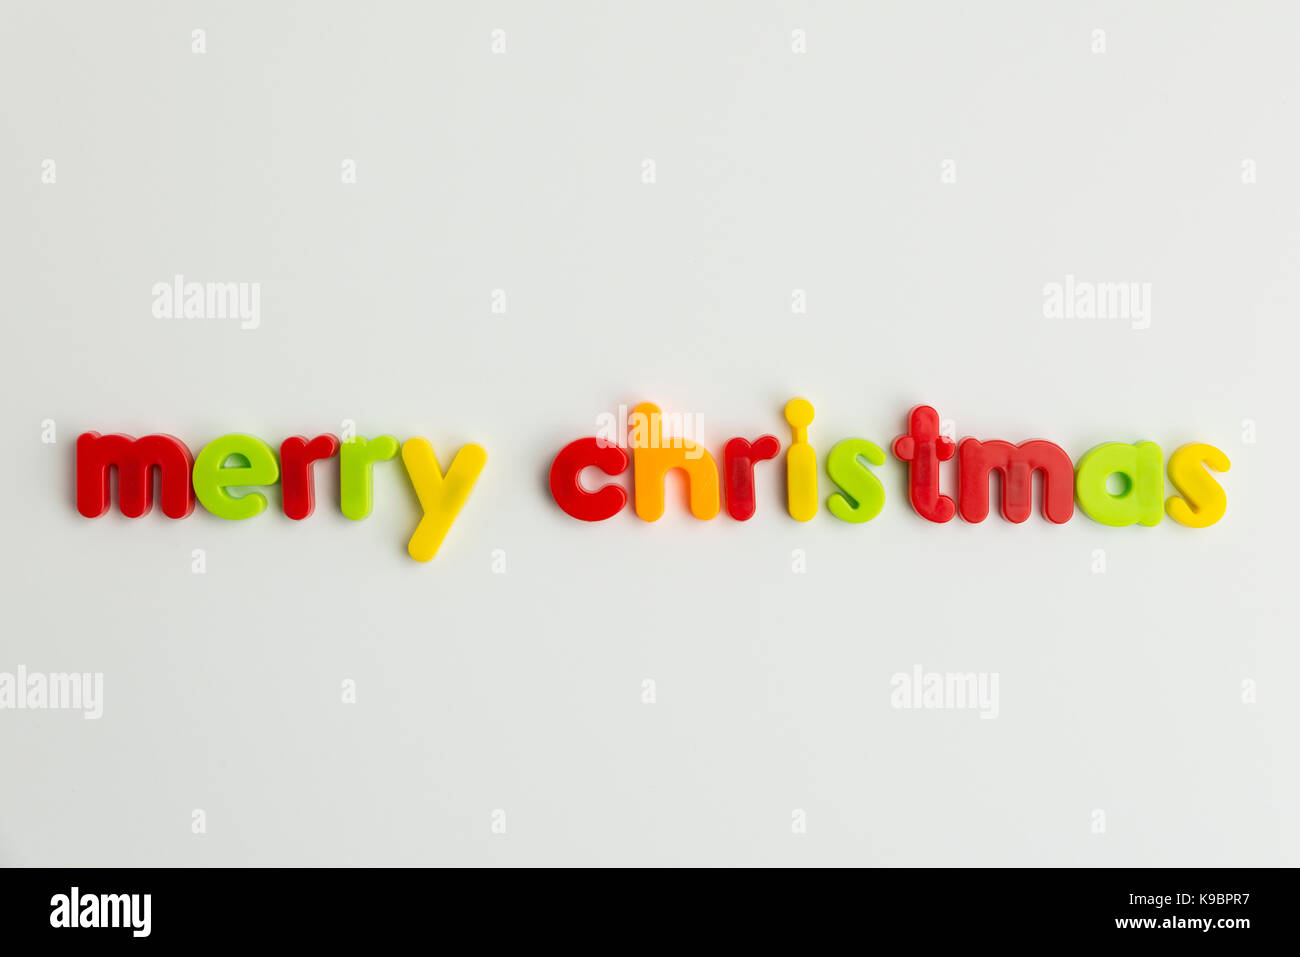 Merry Christmas Words Stock Photos & Merry Christmas Words Stock ...